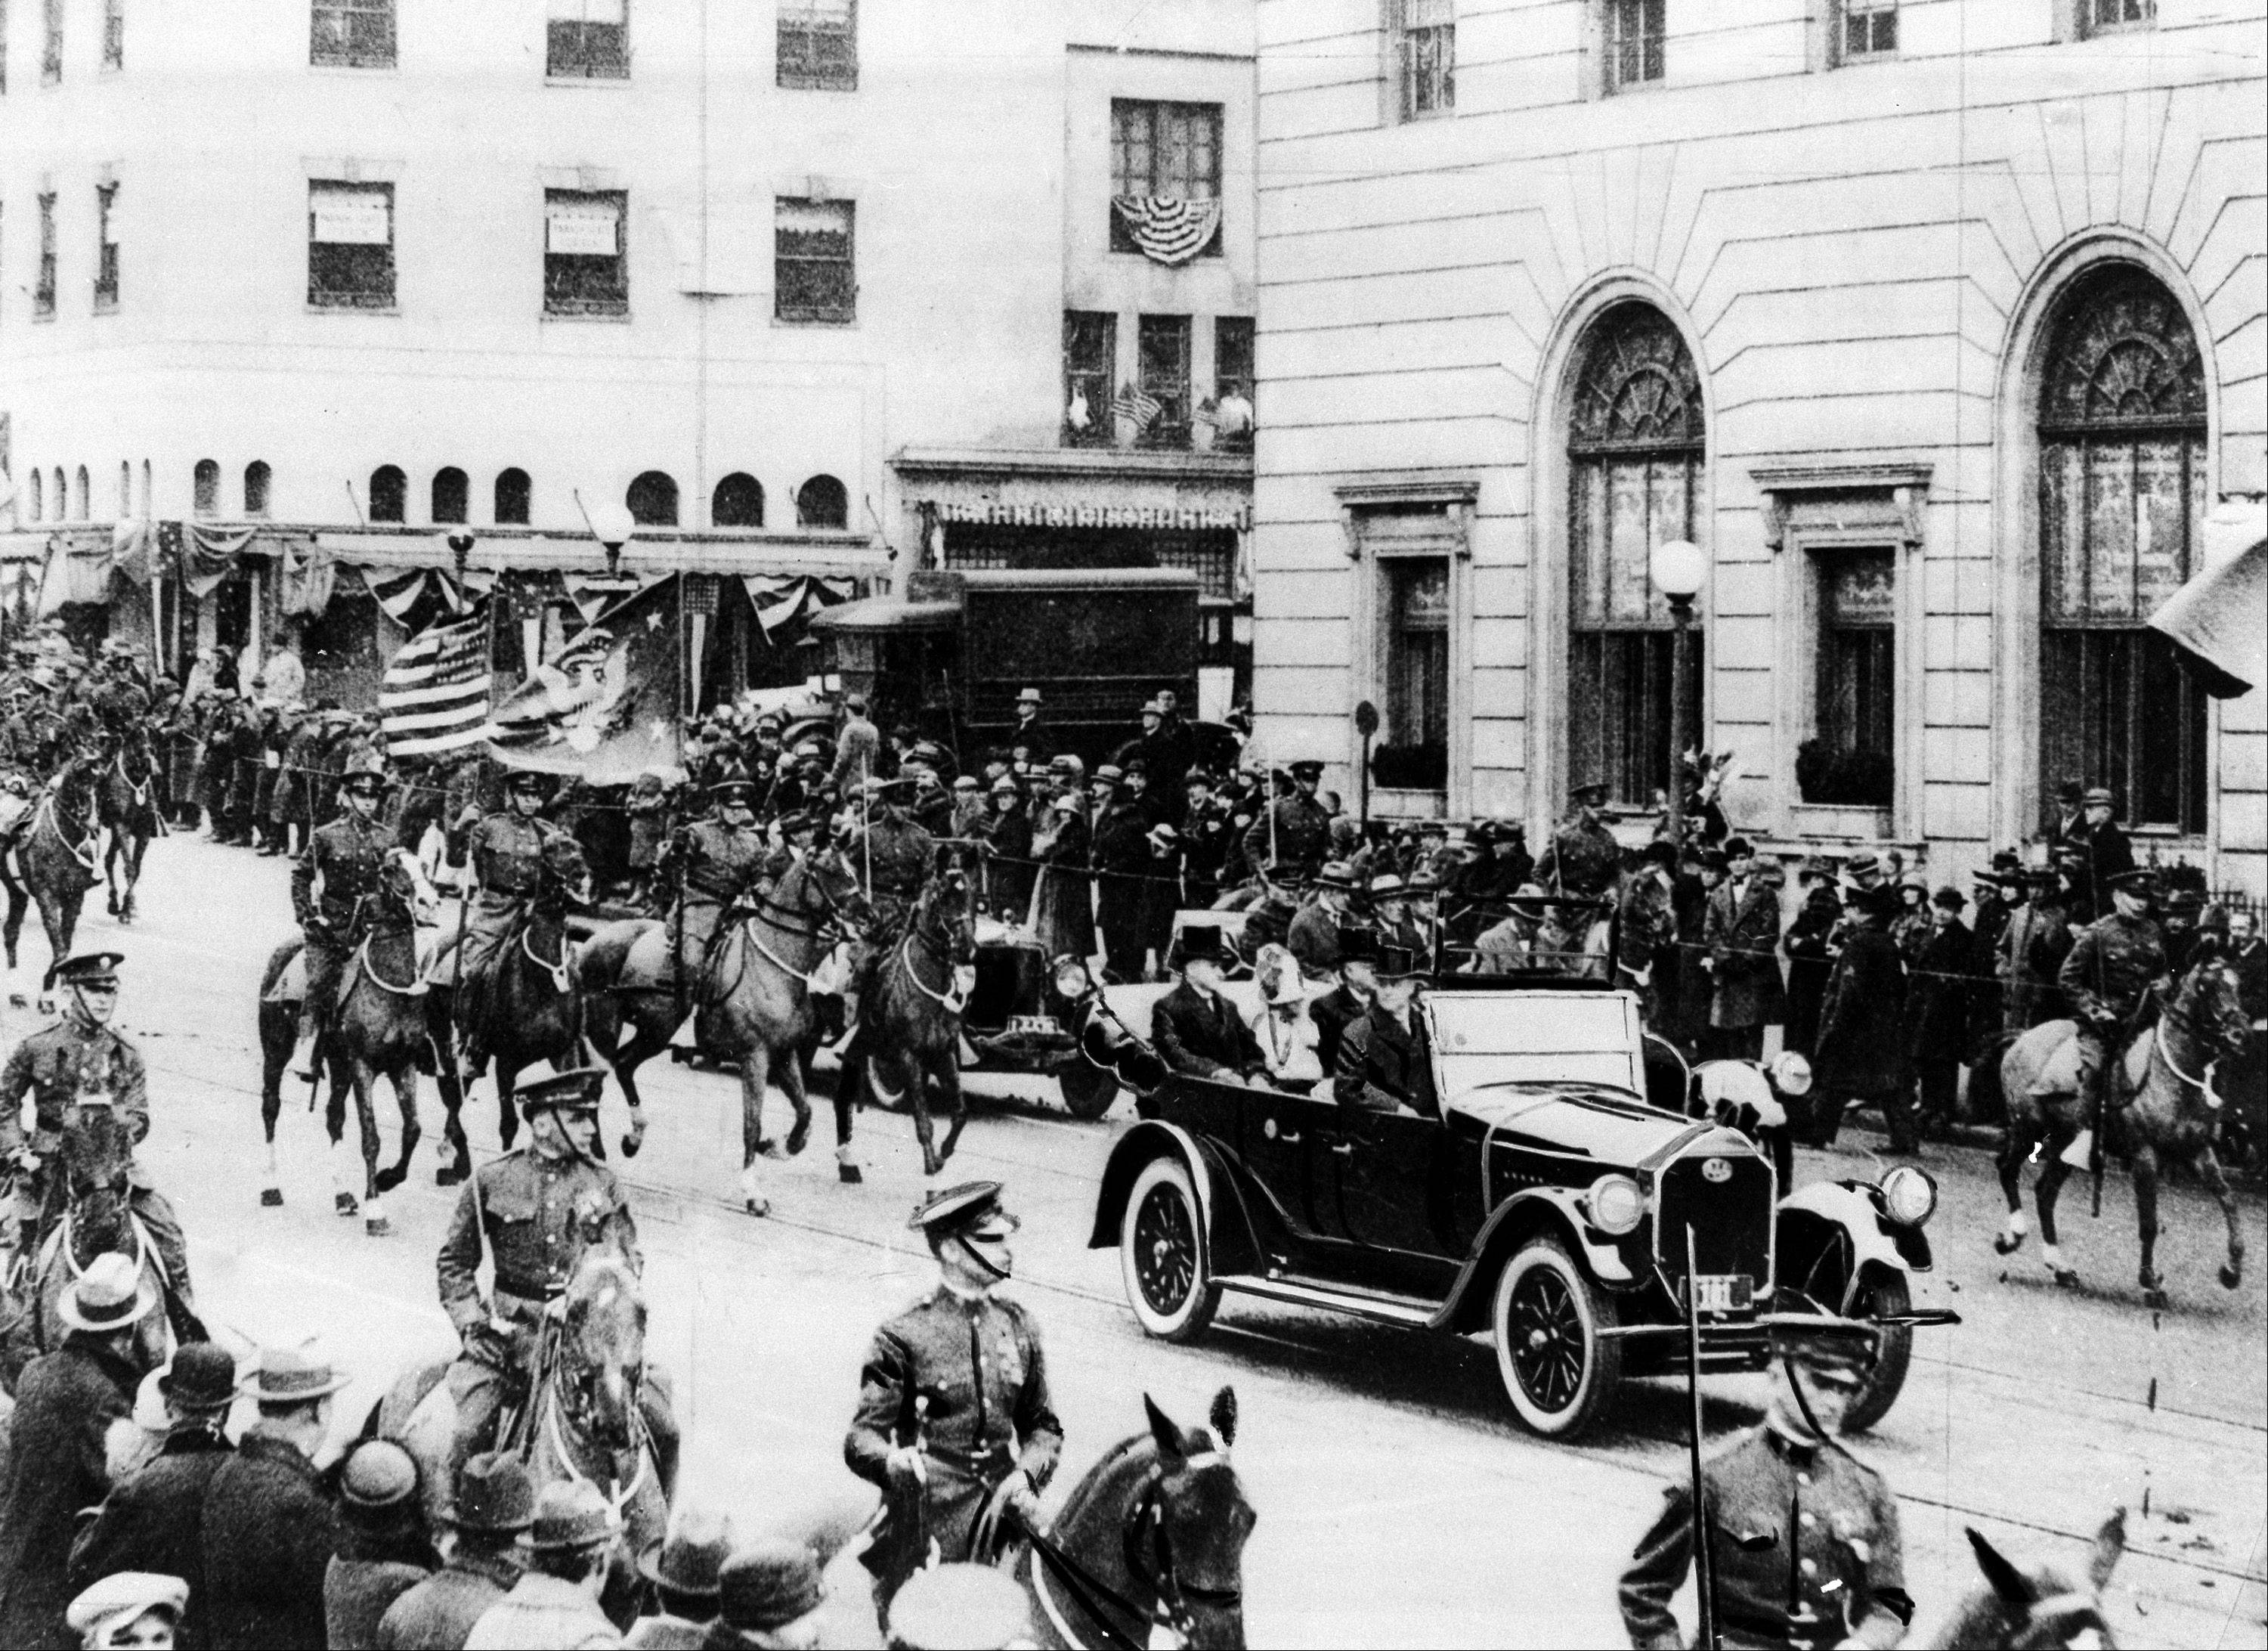 President Calvin Coolidge rides in an open car at the head of the inaugural parade with his wife Grace and Chief Justice Wiliam H. Taft in Washington, D.C., on March 4, 1925. Coolidge was sworn in as the 30th president of the United States.